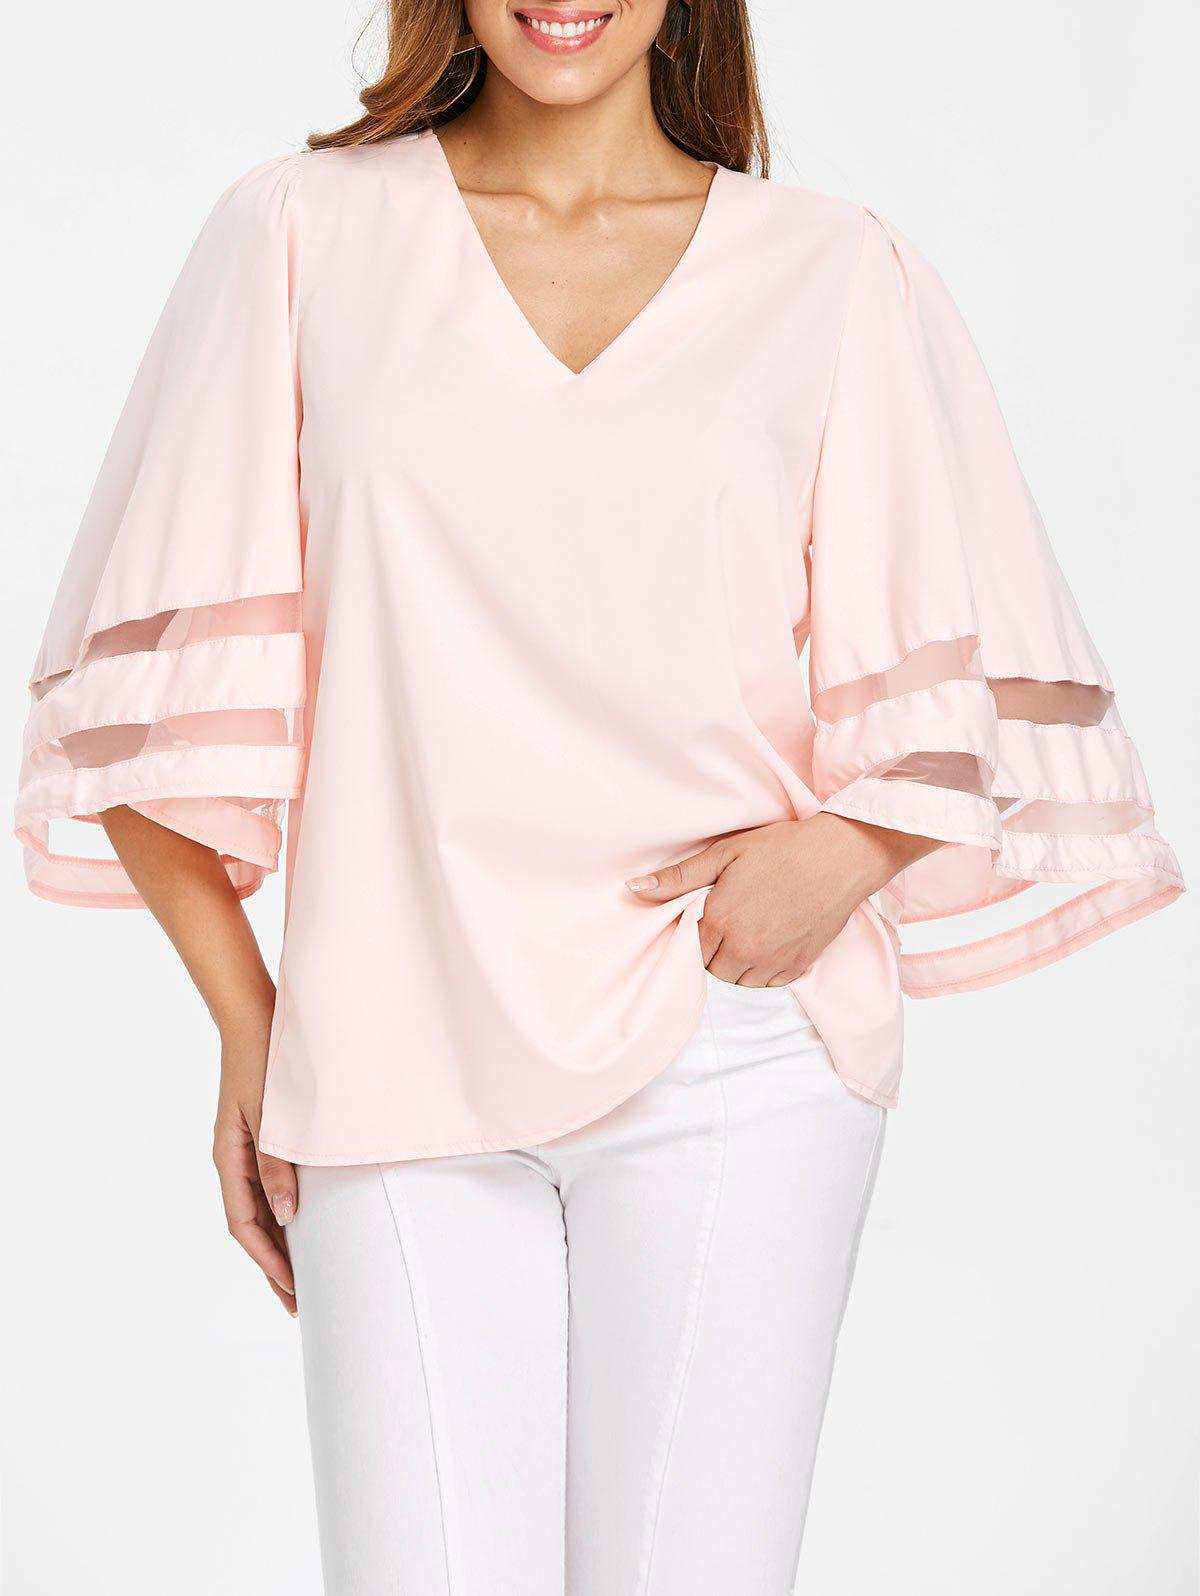 V Neck Plain Blouse - LIGHT PINK 2XL